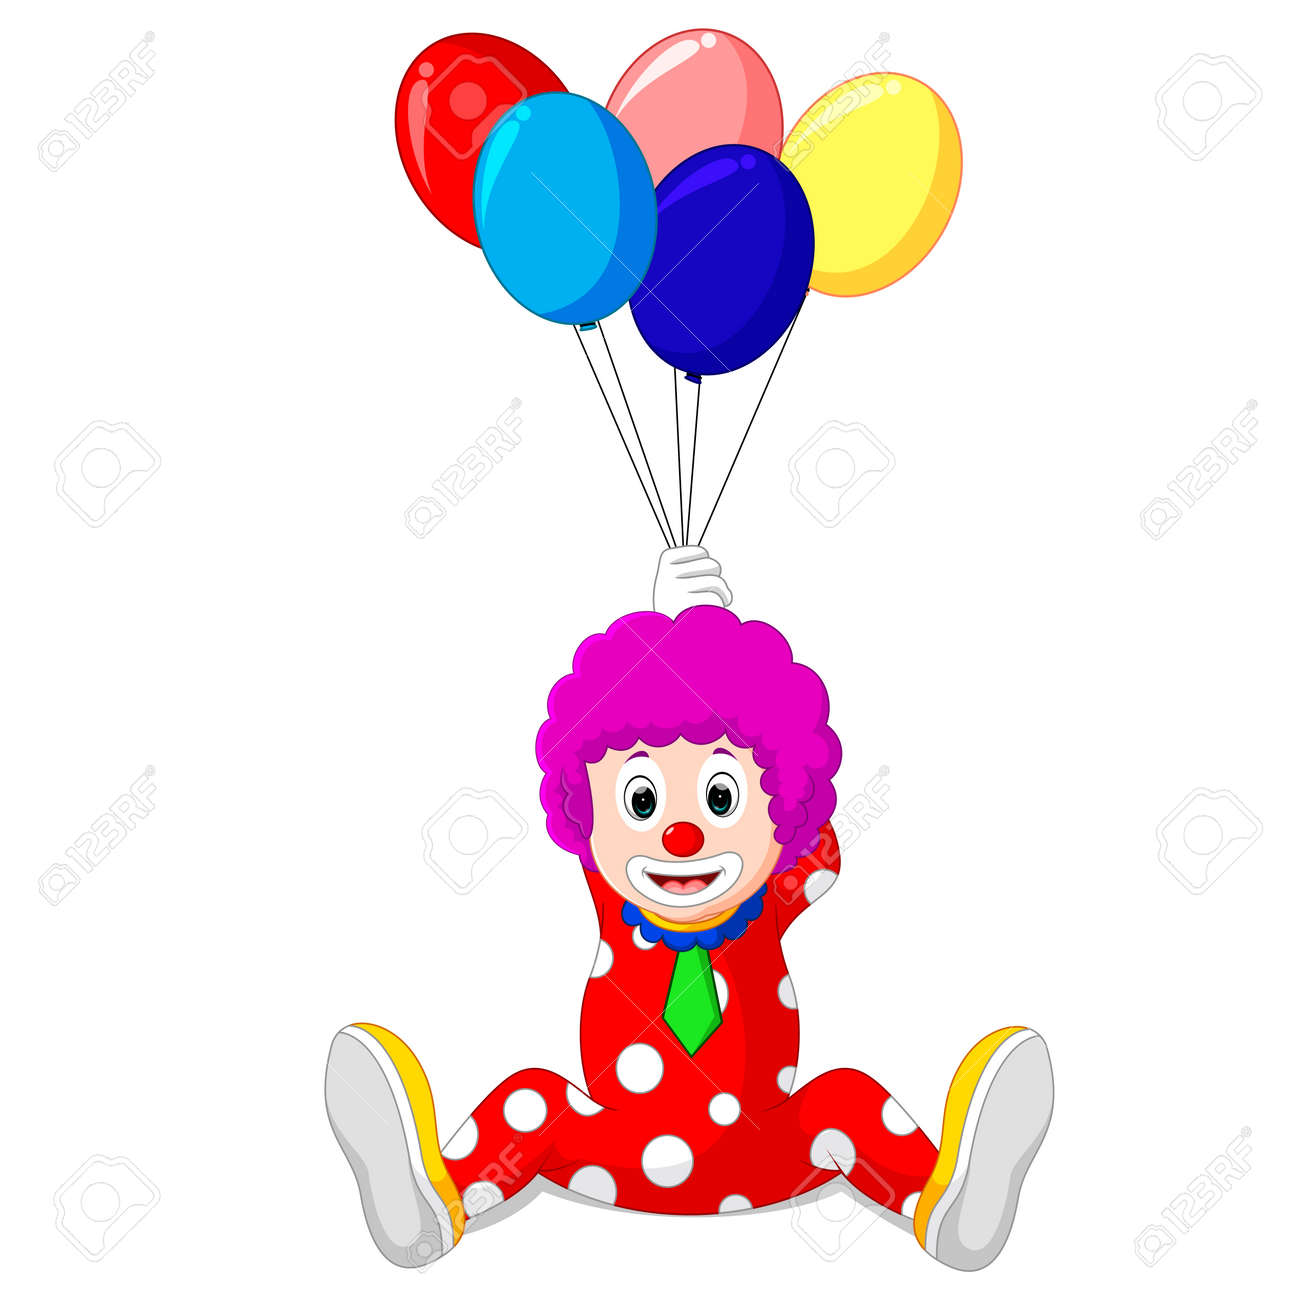 167 Clown Holding Balloons Stock Illustrations, Cliparts And Royalty ...